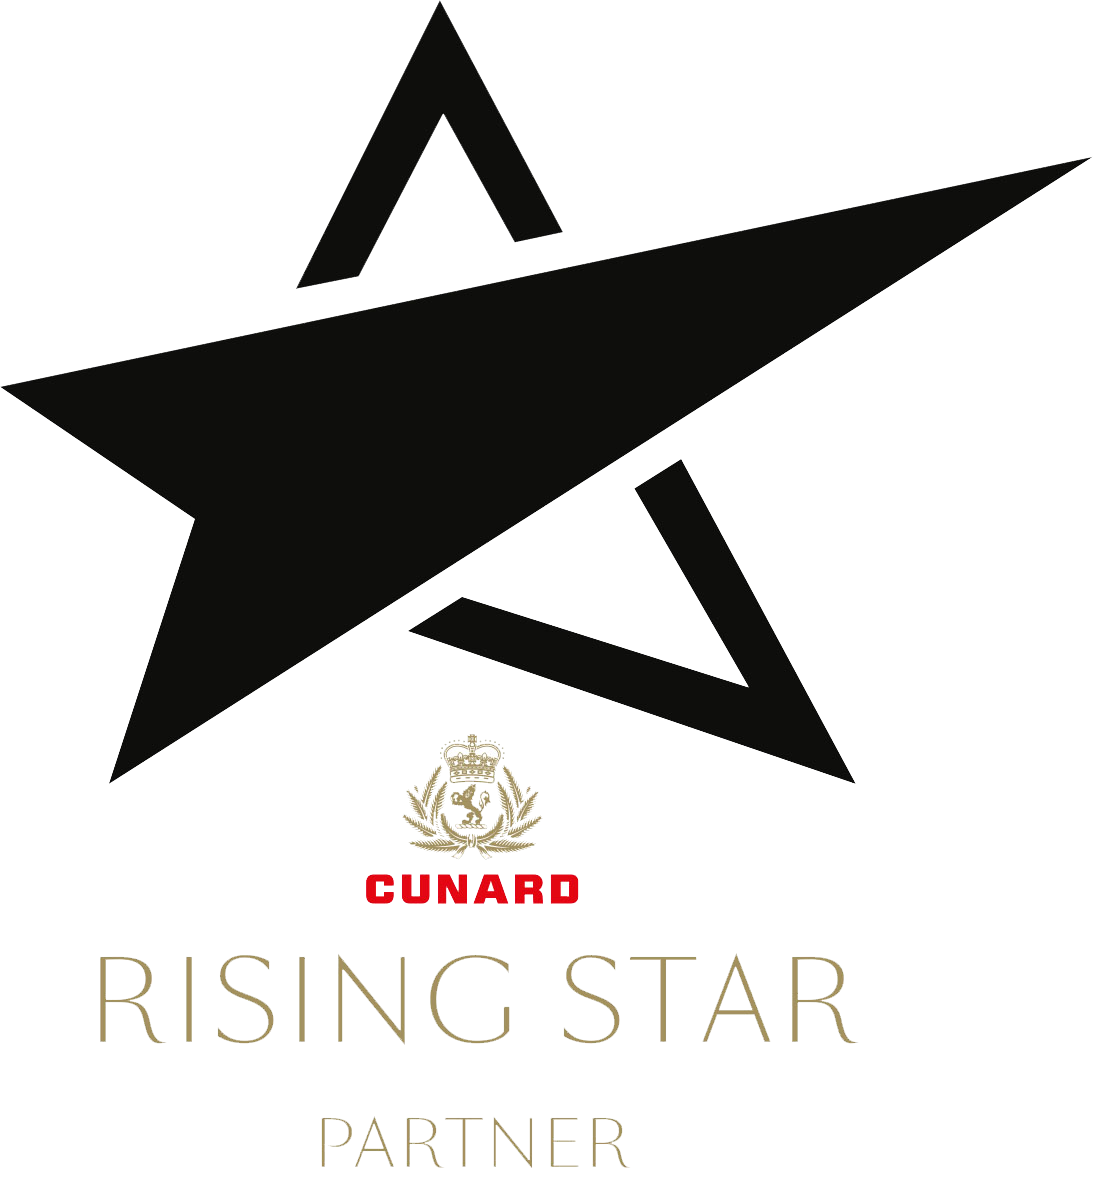 Cunard Rising Start Partner